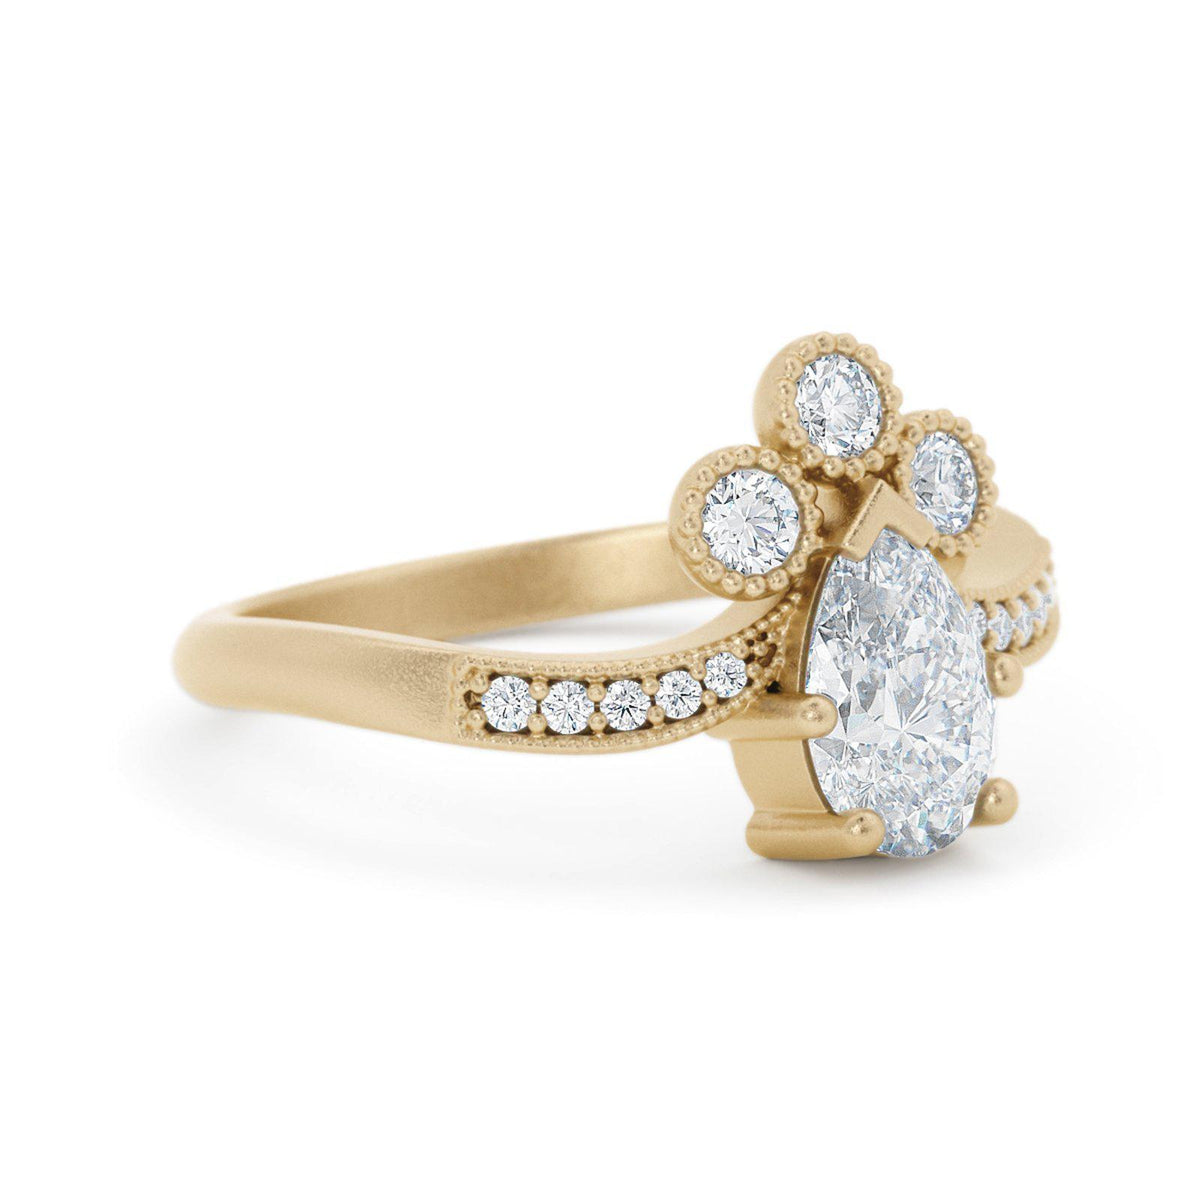 Josephine Pear Shaped Diamond Engagement Ring Vintage Inspired